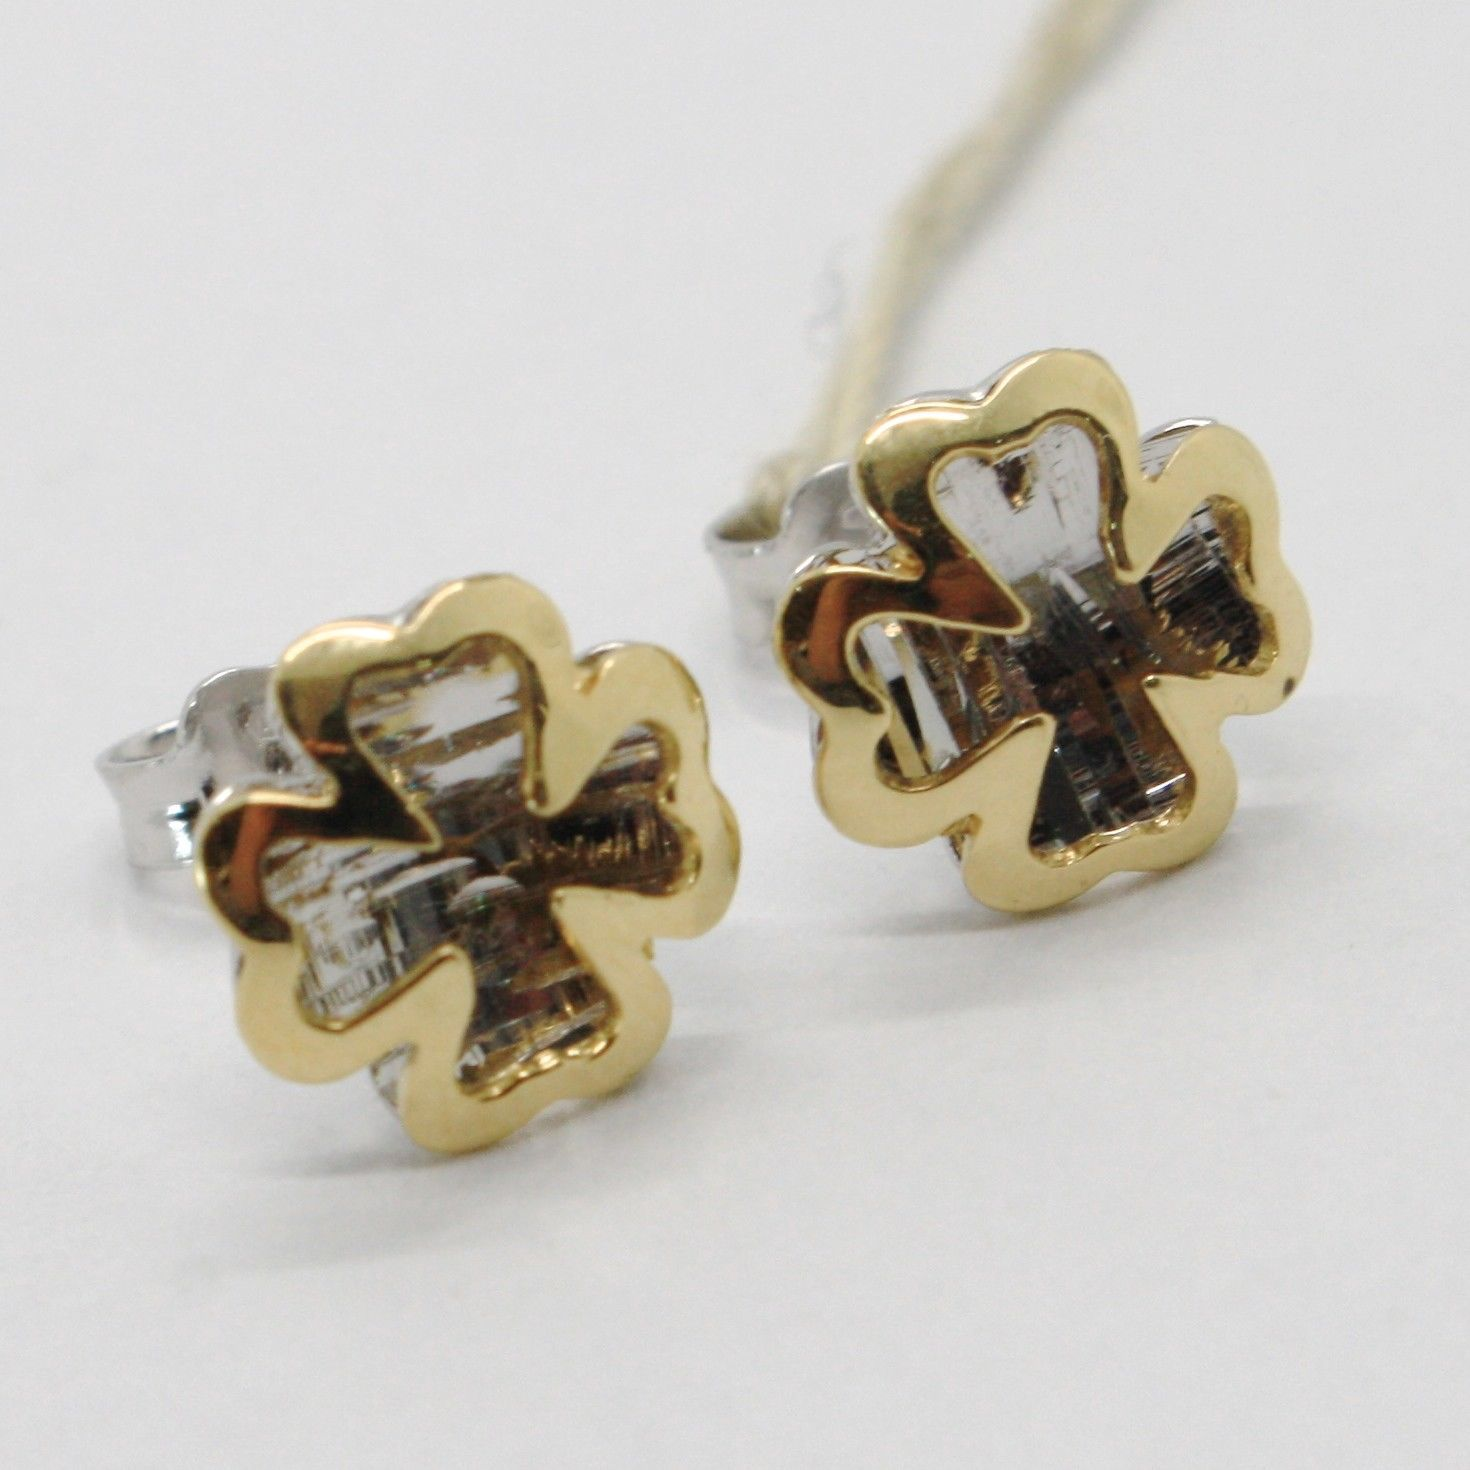 18K WHITE YELLOW GOLD FOUR LEAF CLOVER DOUBLE EARRINGS, FINELY WORKED ITALY MADE